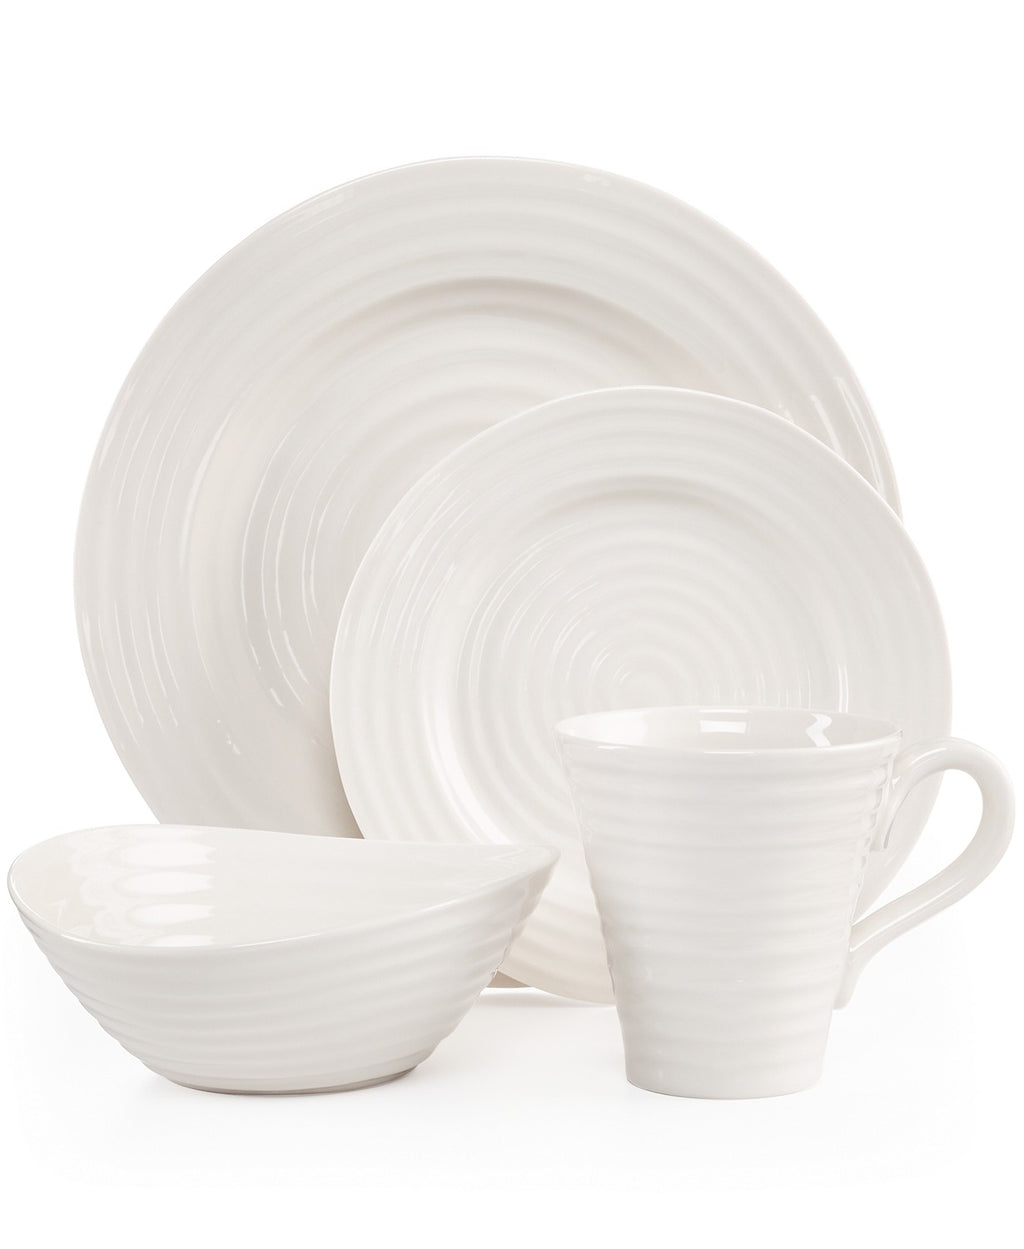 Sophie Conran Place Setting